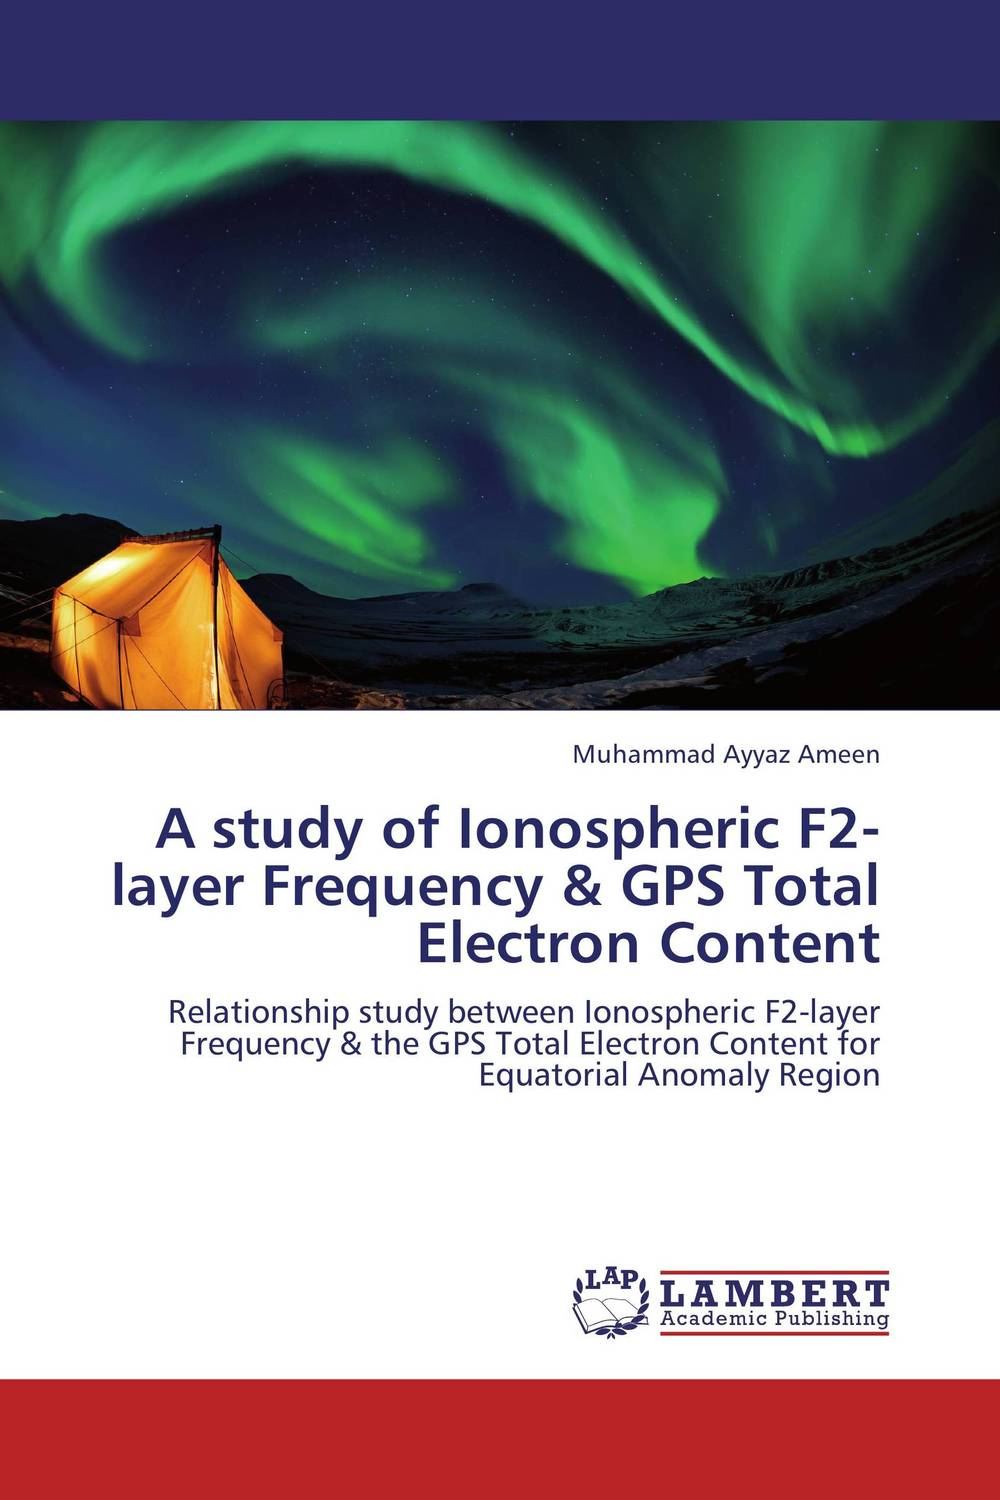 A study of Ionospheric F2-layer Frequency & GPS Total Electron Content mf2300 f2